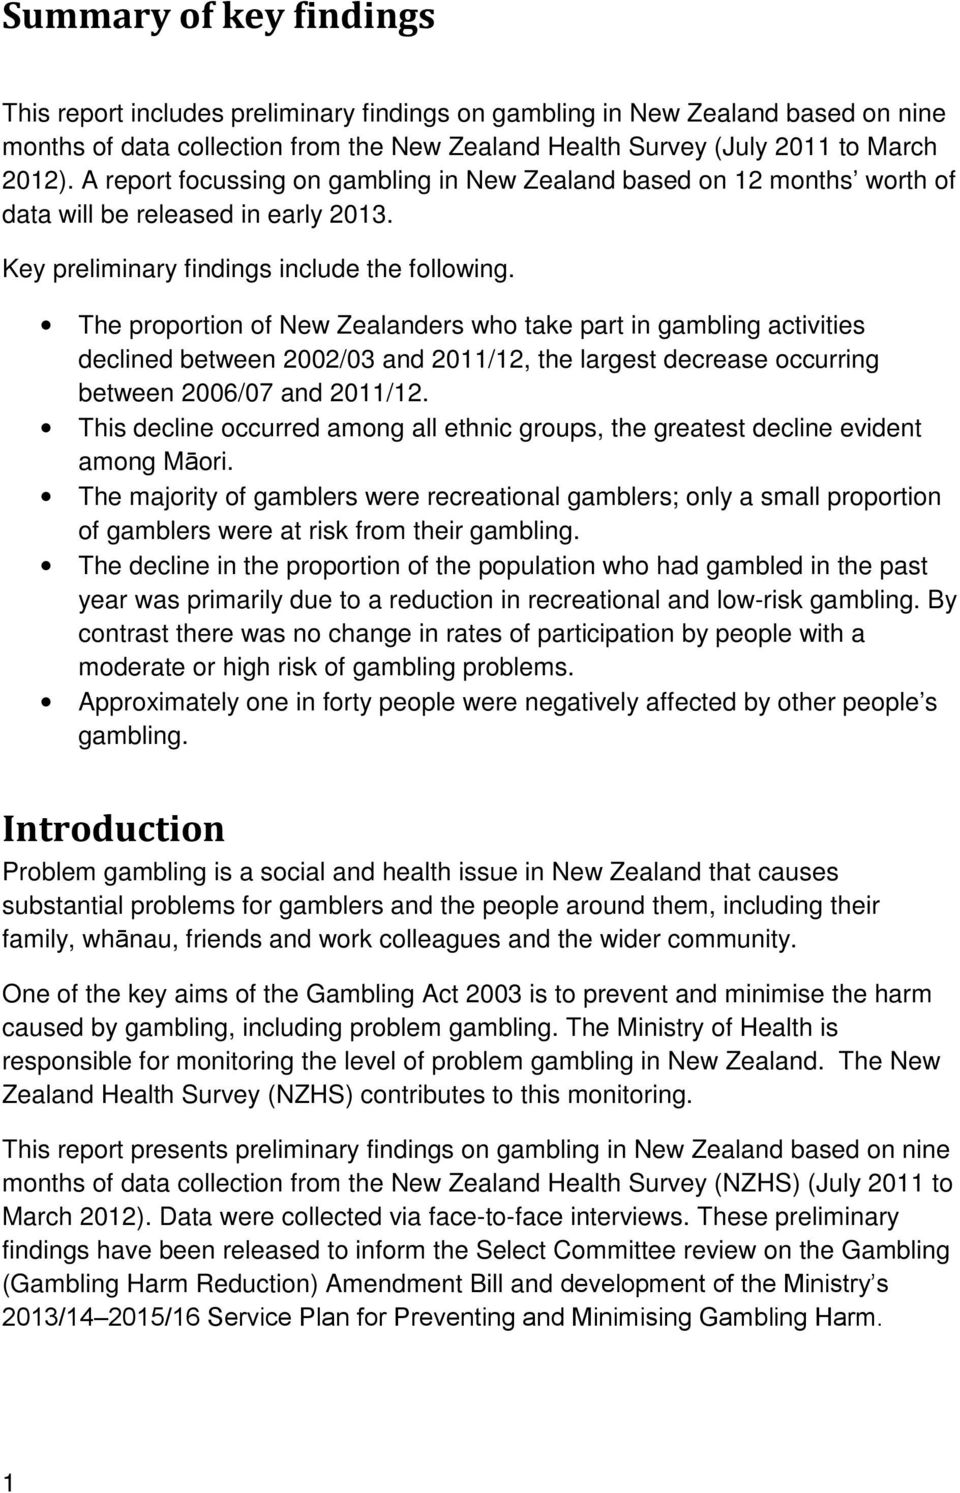 The proportion of New Zealanders who take part in gambling activities declined between 2002/03 and 2011/12, the largest decrease occurring between 2006/07 and 2011/12.